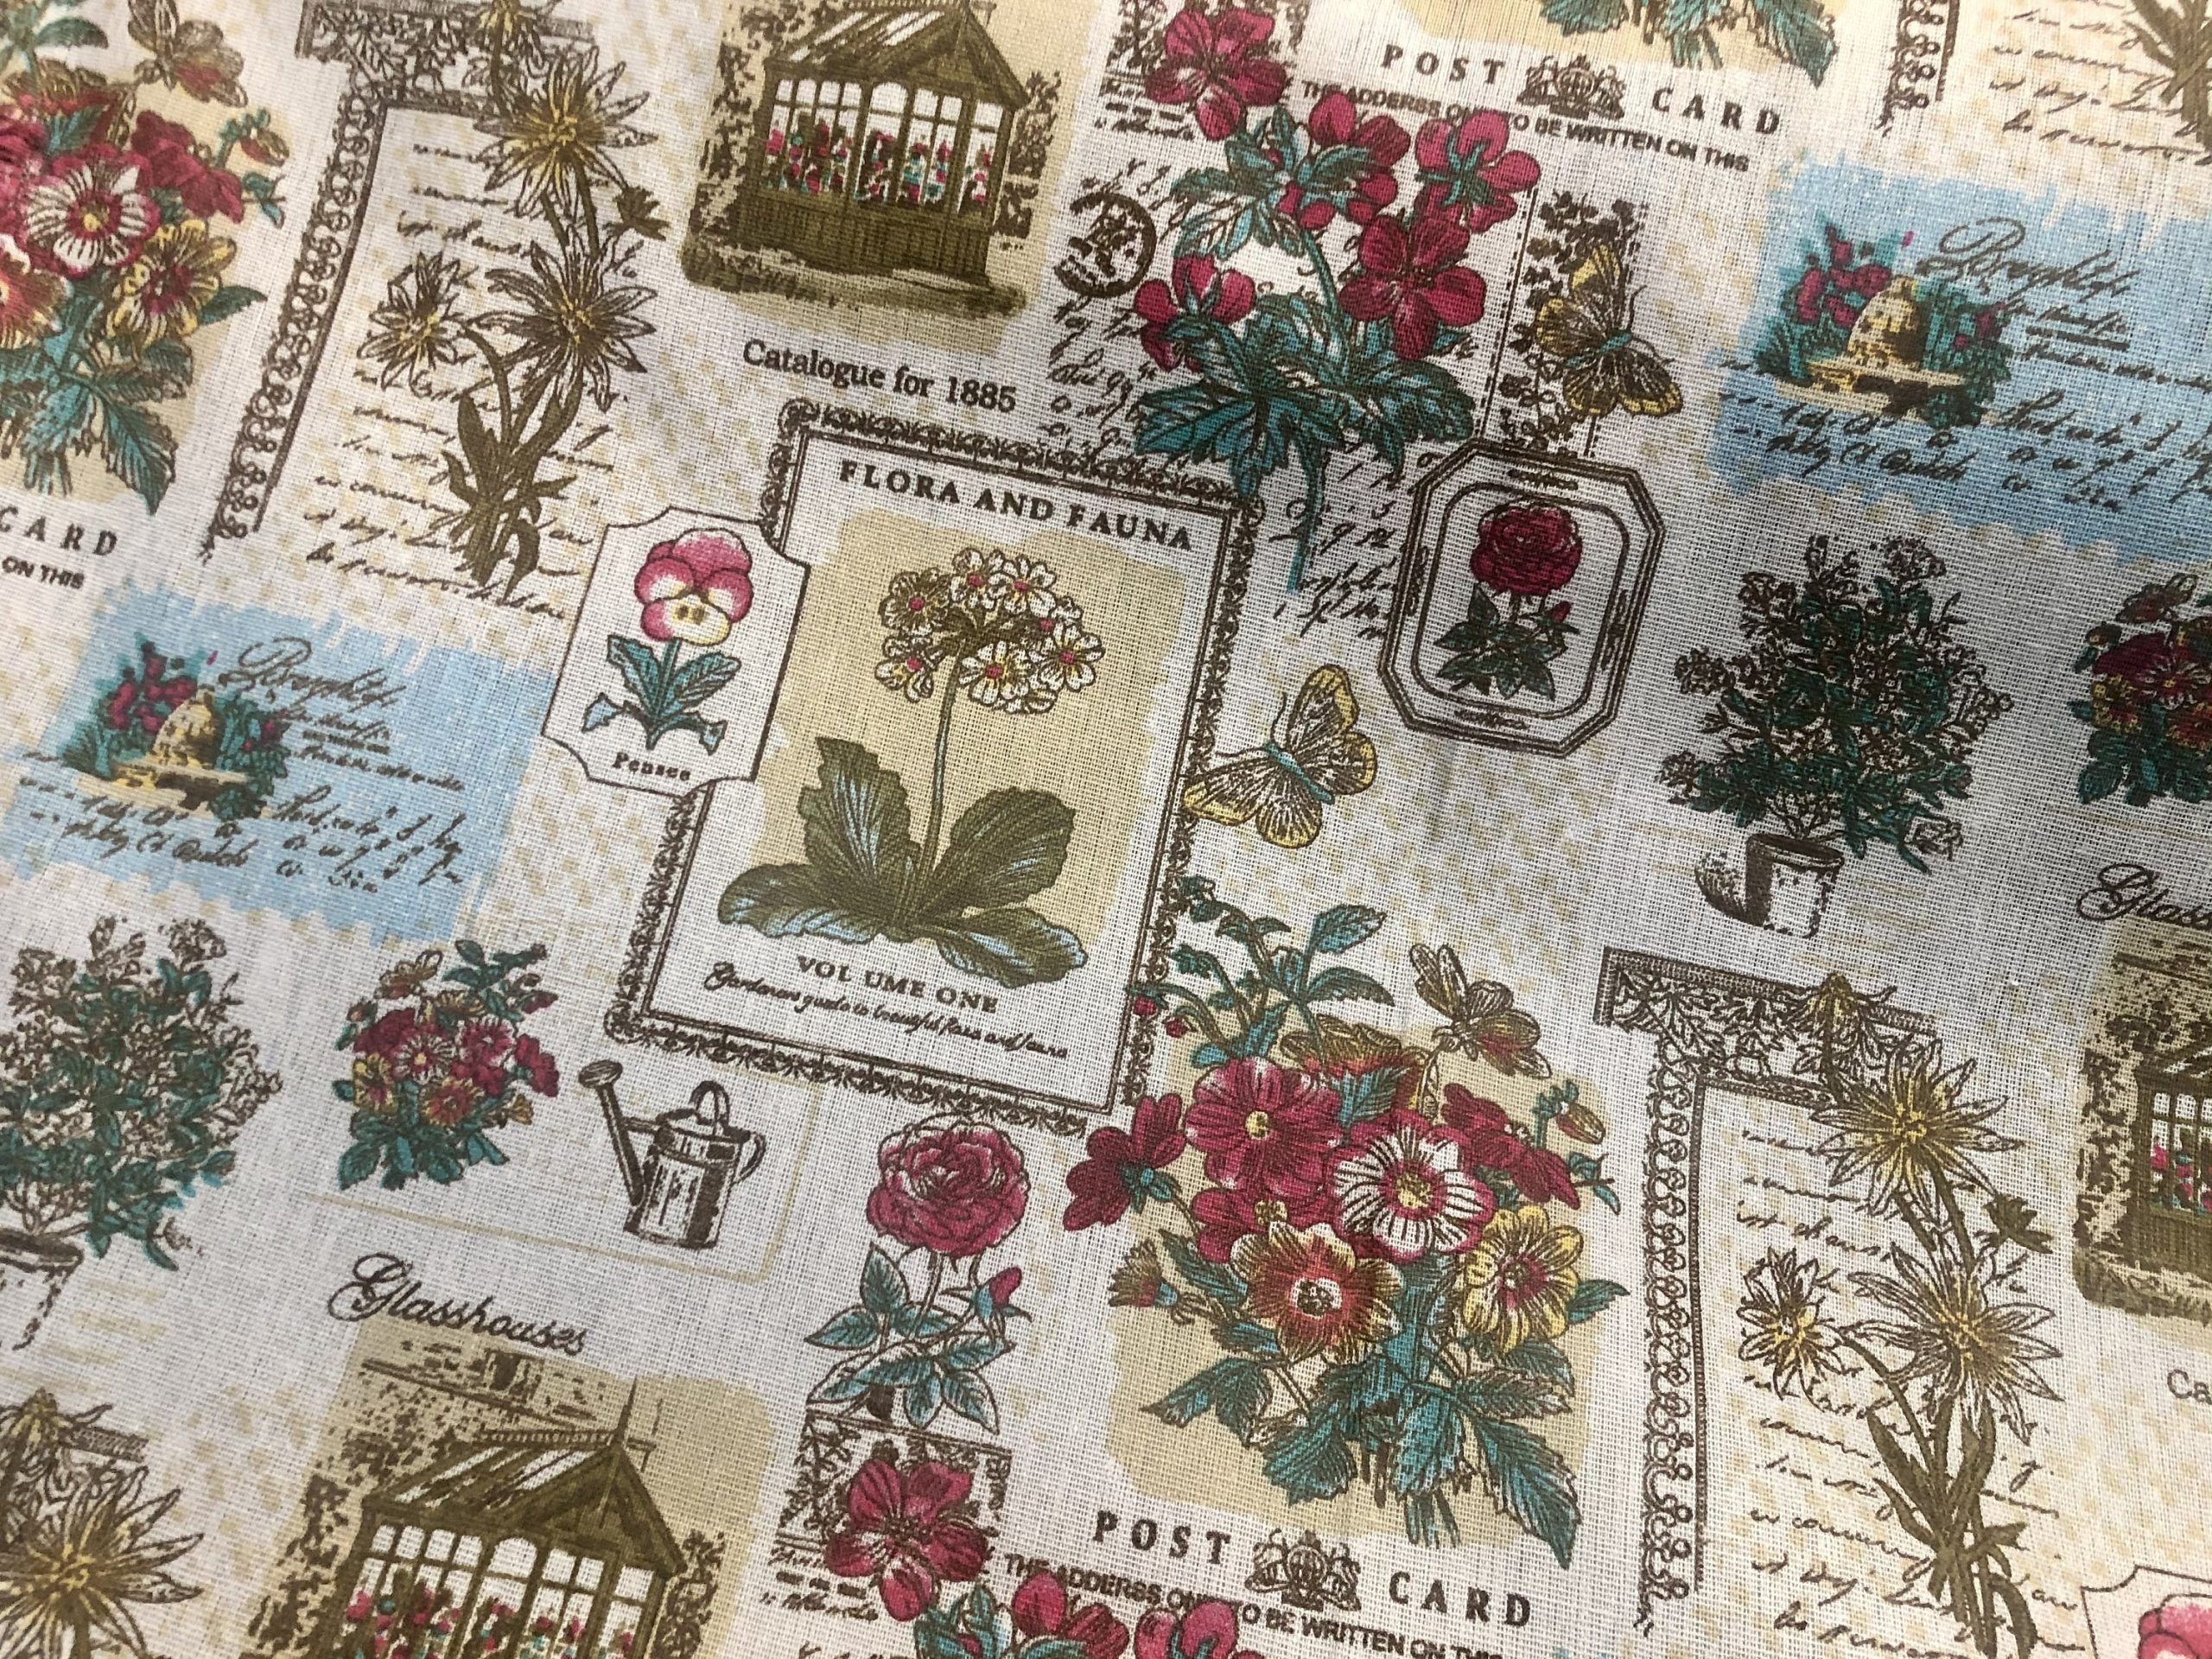 """Botanic Garden Cotton Linen Blend Fabric Natural Vintage Look Floral Printed Material Home Decor Curtain Upholstery- 59""""/150cm Wide Canvas"""